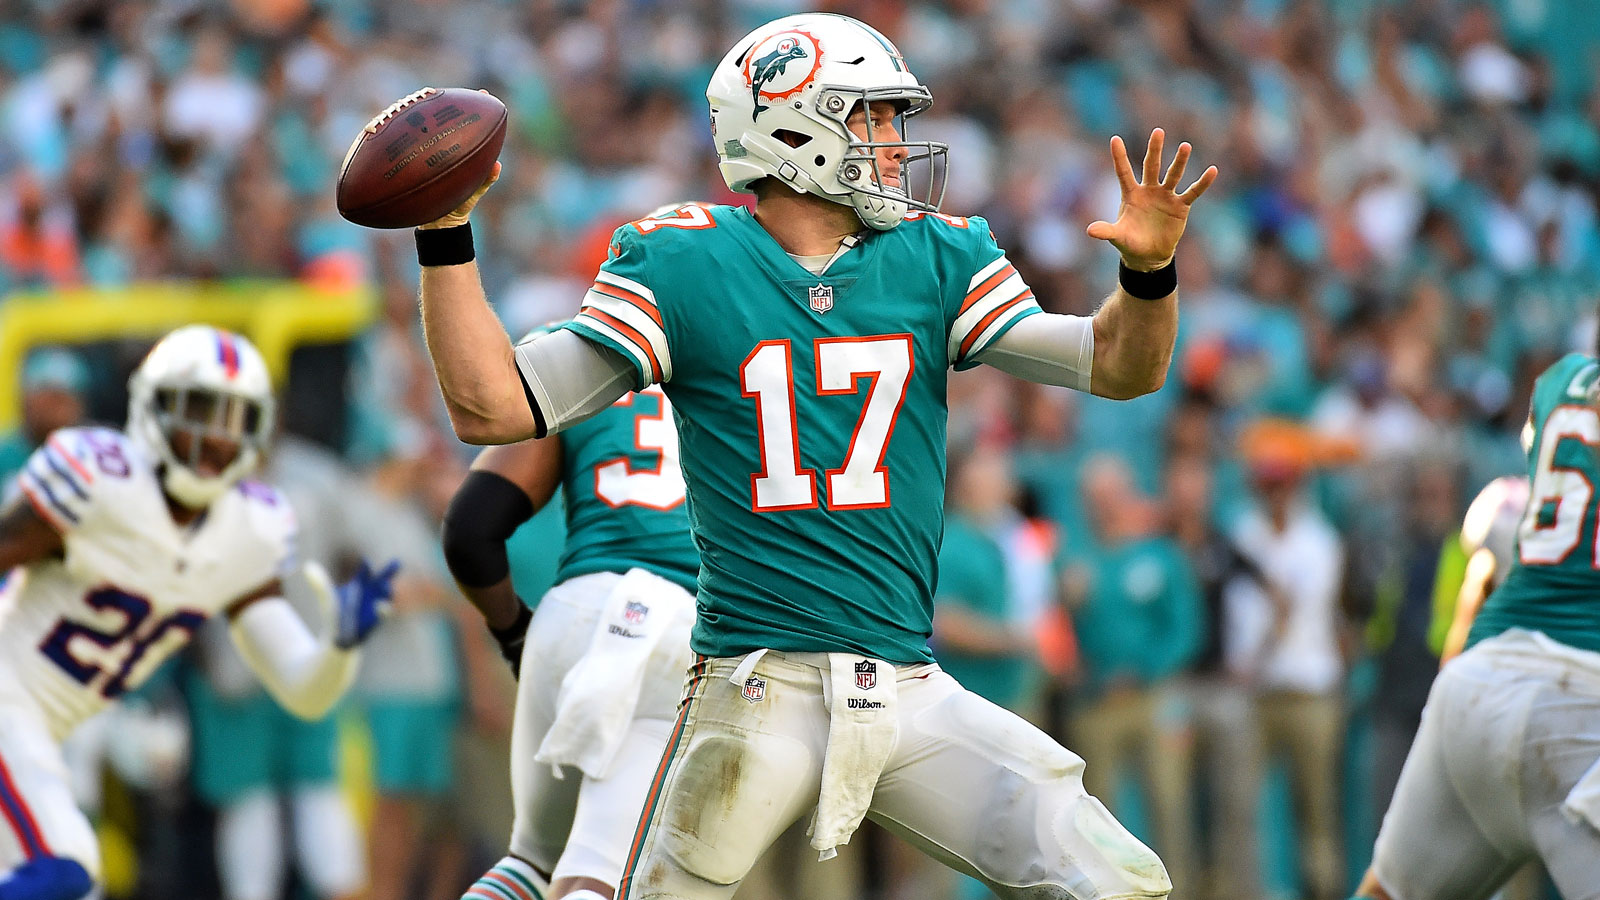 Ryan Tannehill's 3 TDs help Dolphins keep playoff hopes alive with win over Bills